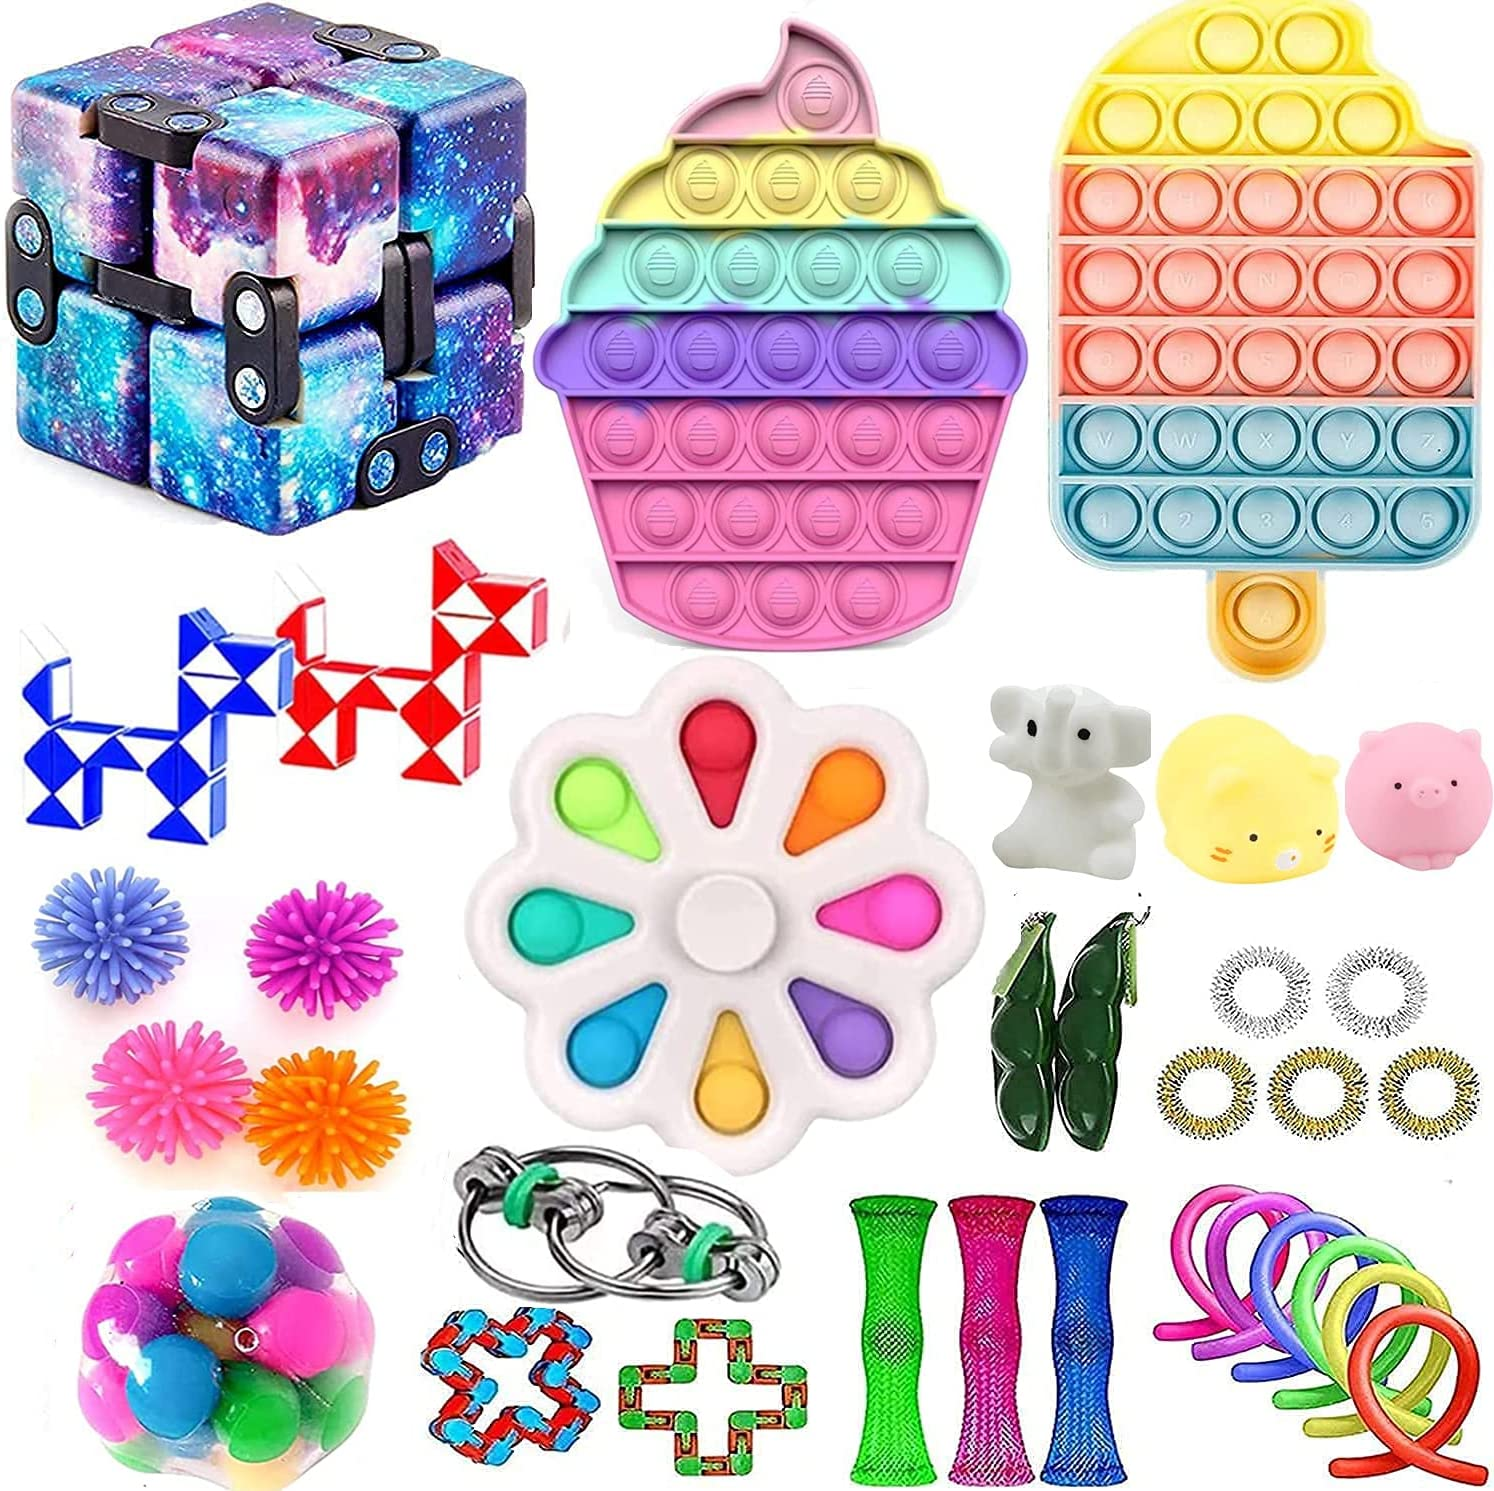 Huibao Fidget Toys Packs Sensory Toy Max 69% OFF Packages OFFicial mail order Figit